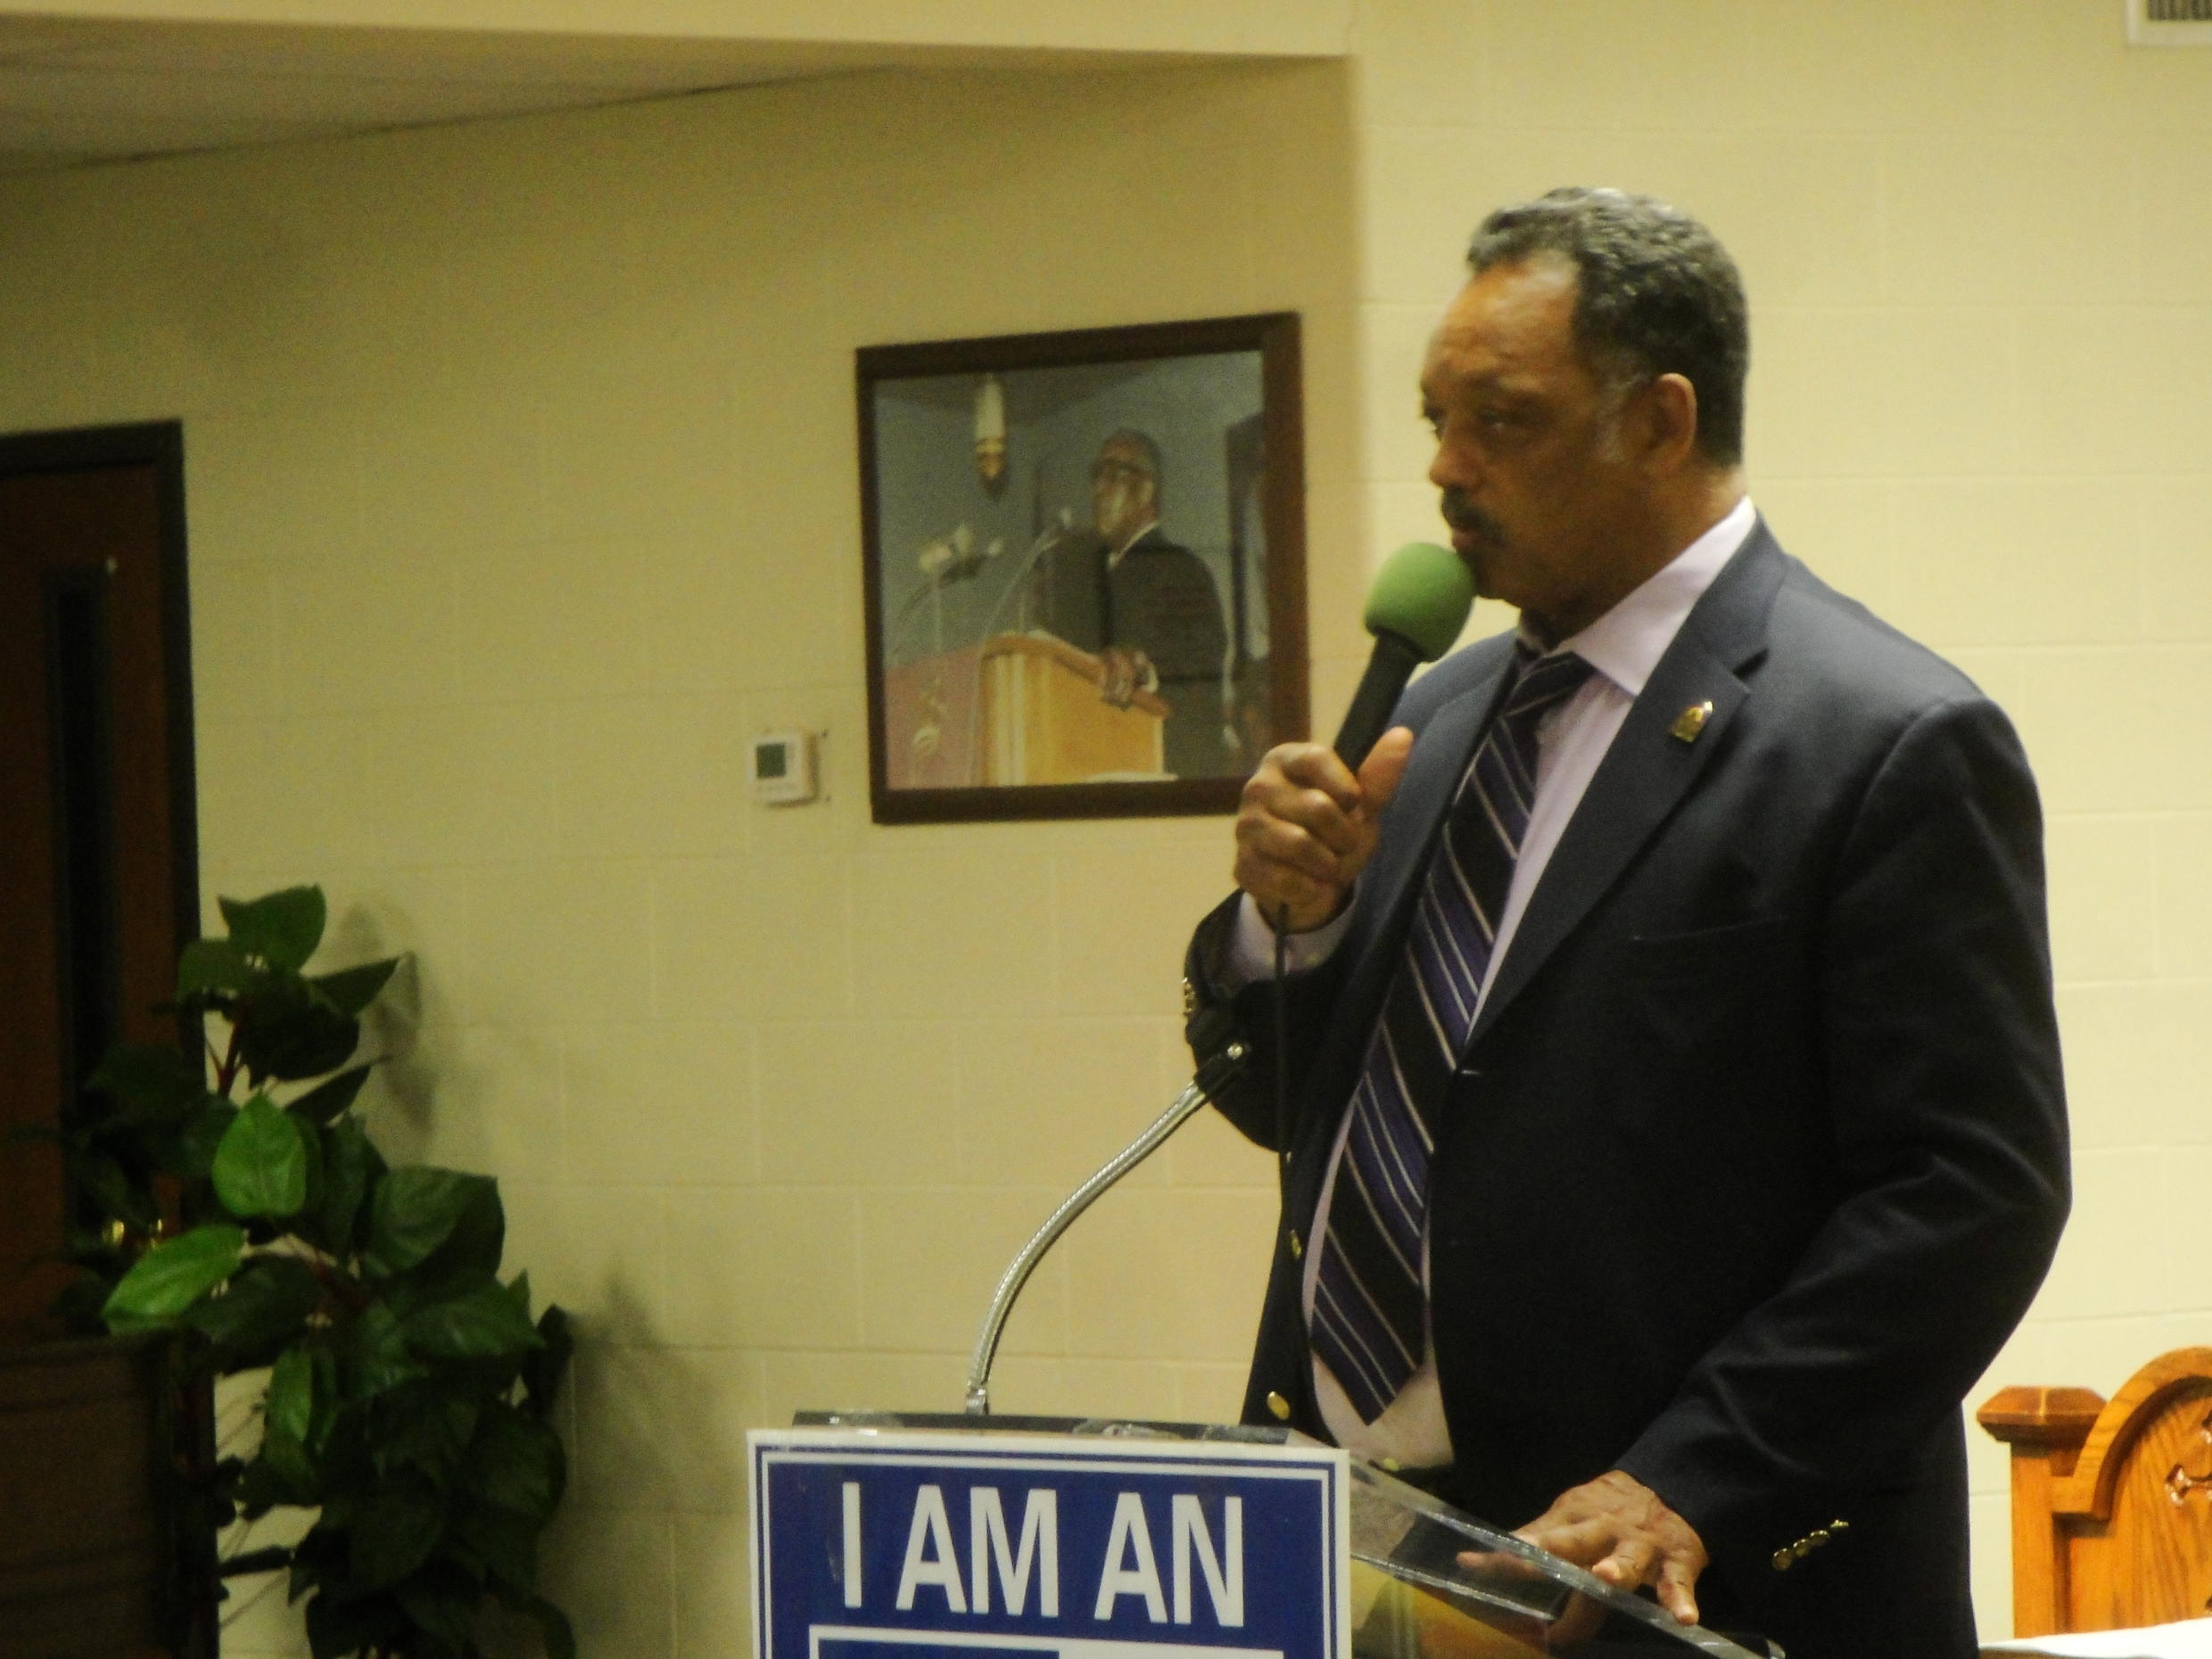 Jesse Jackson speaking at Greater New Hope church in Cincinatti